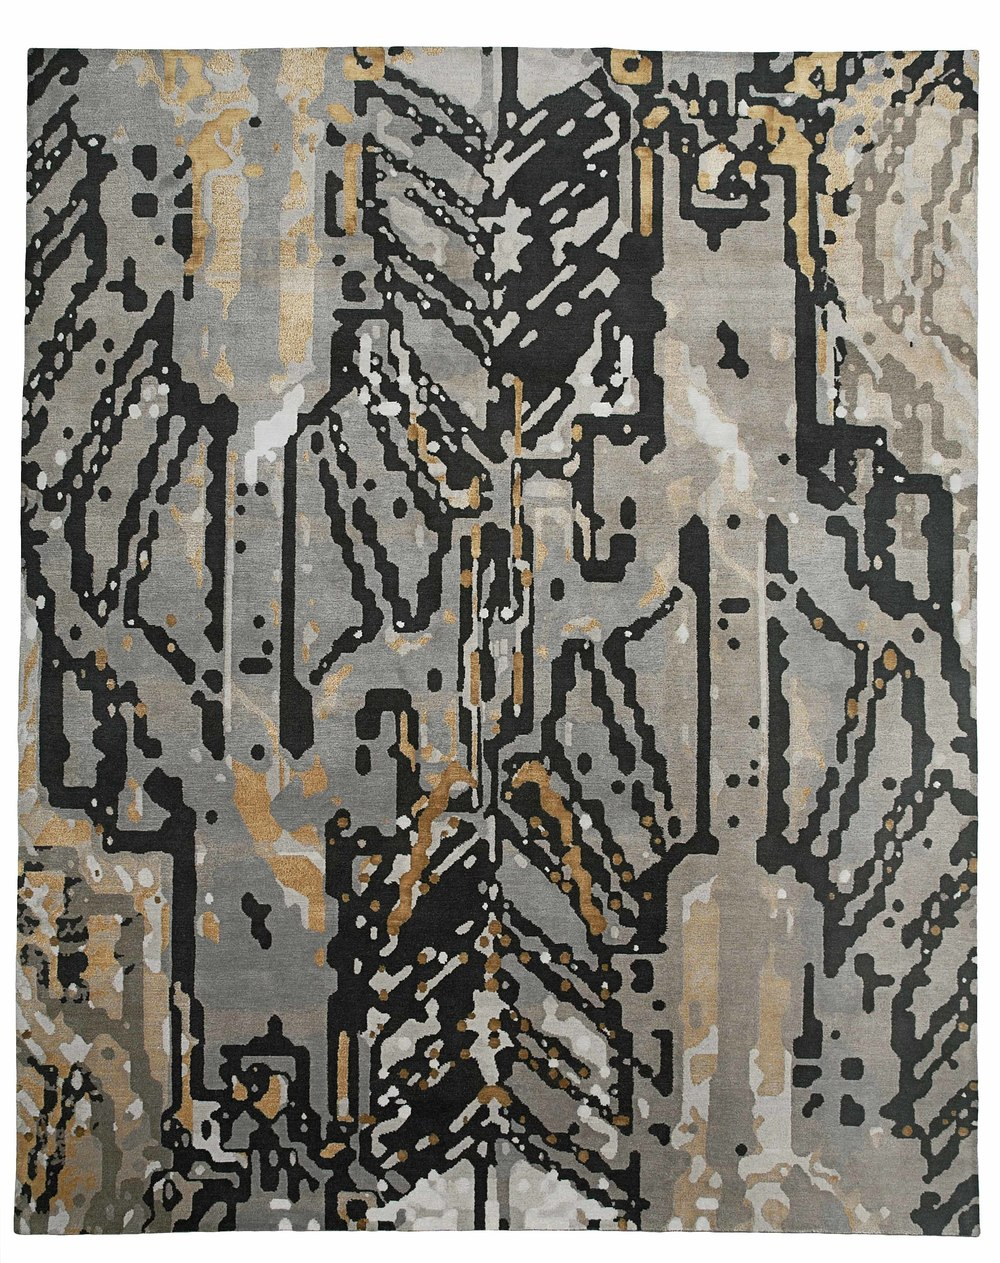 wool company silk gosling by empire contemporary rug new the patterned hall dering rugs tim